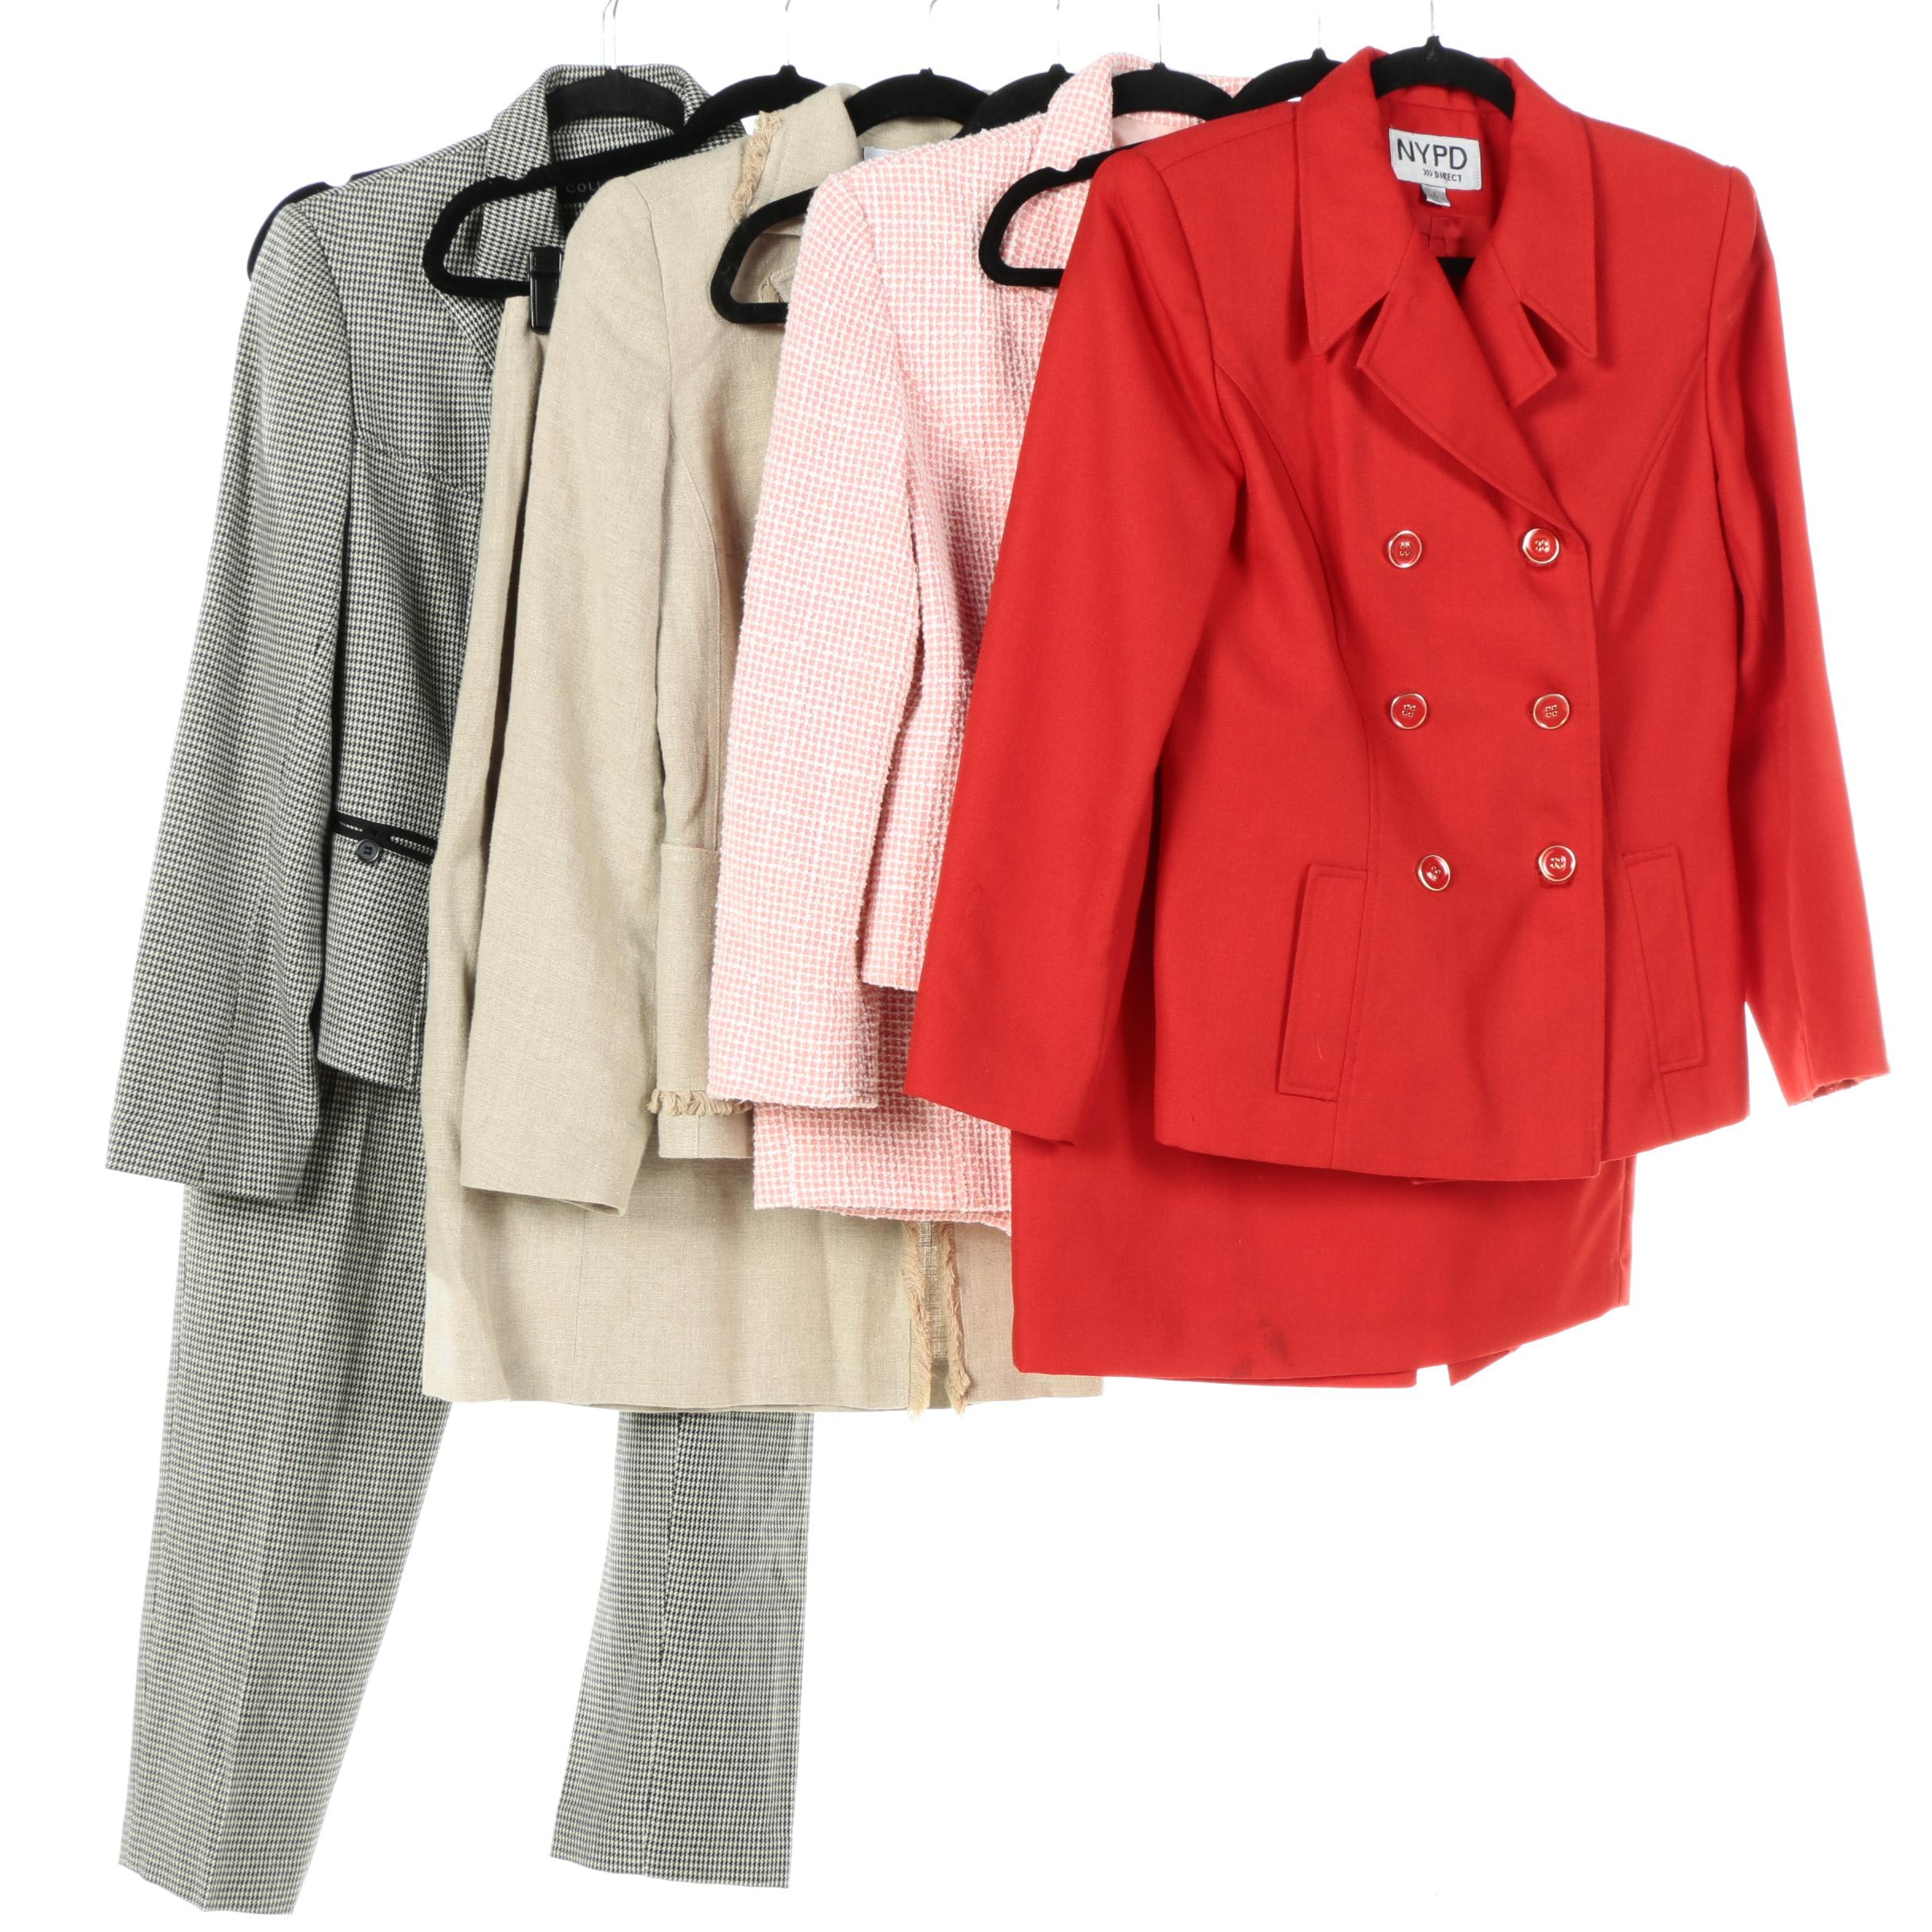 Women's Suits Including Extenzo Paris and Collection by Harvé Benard